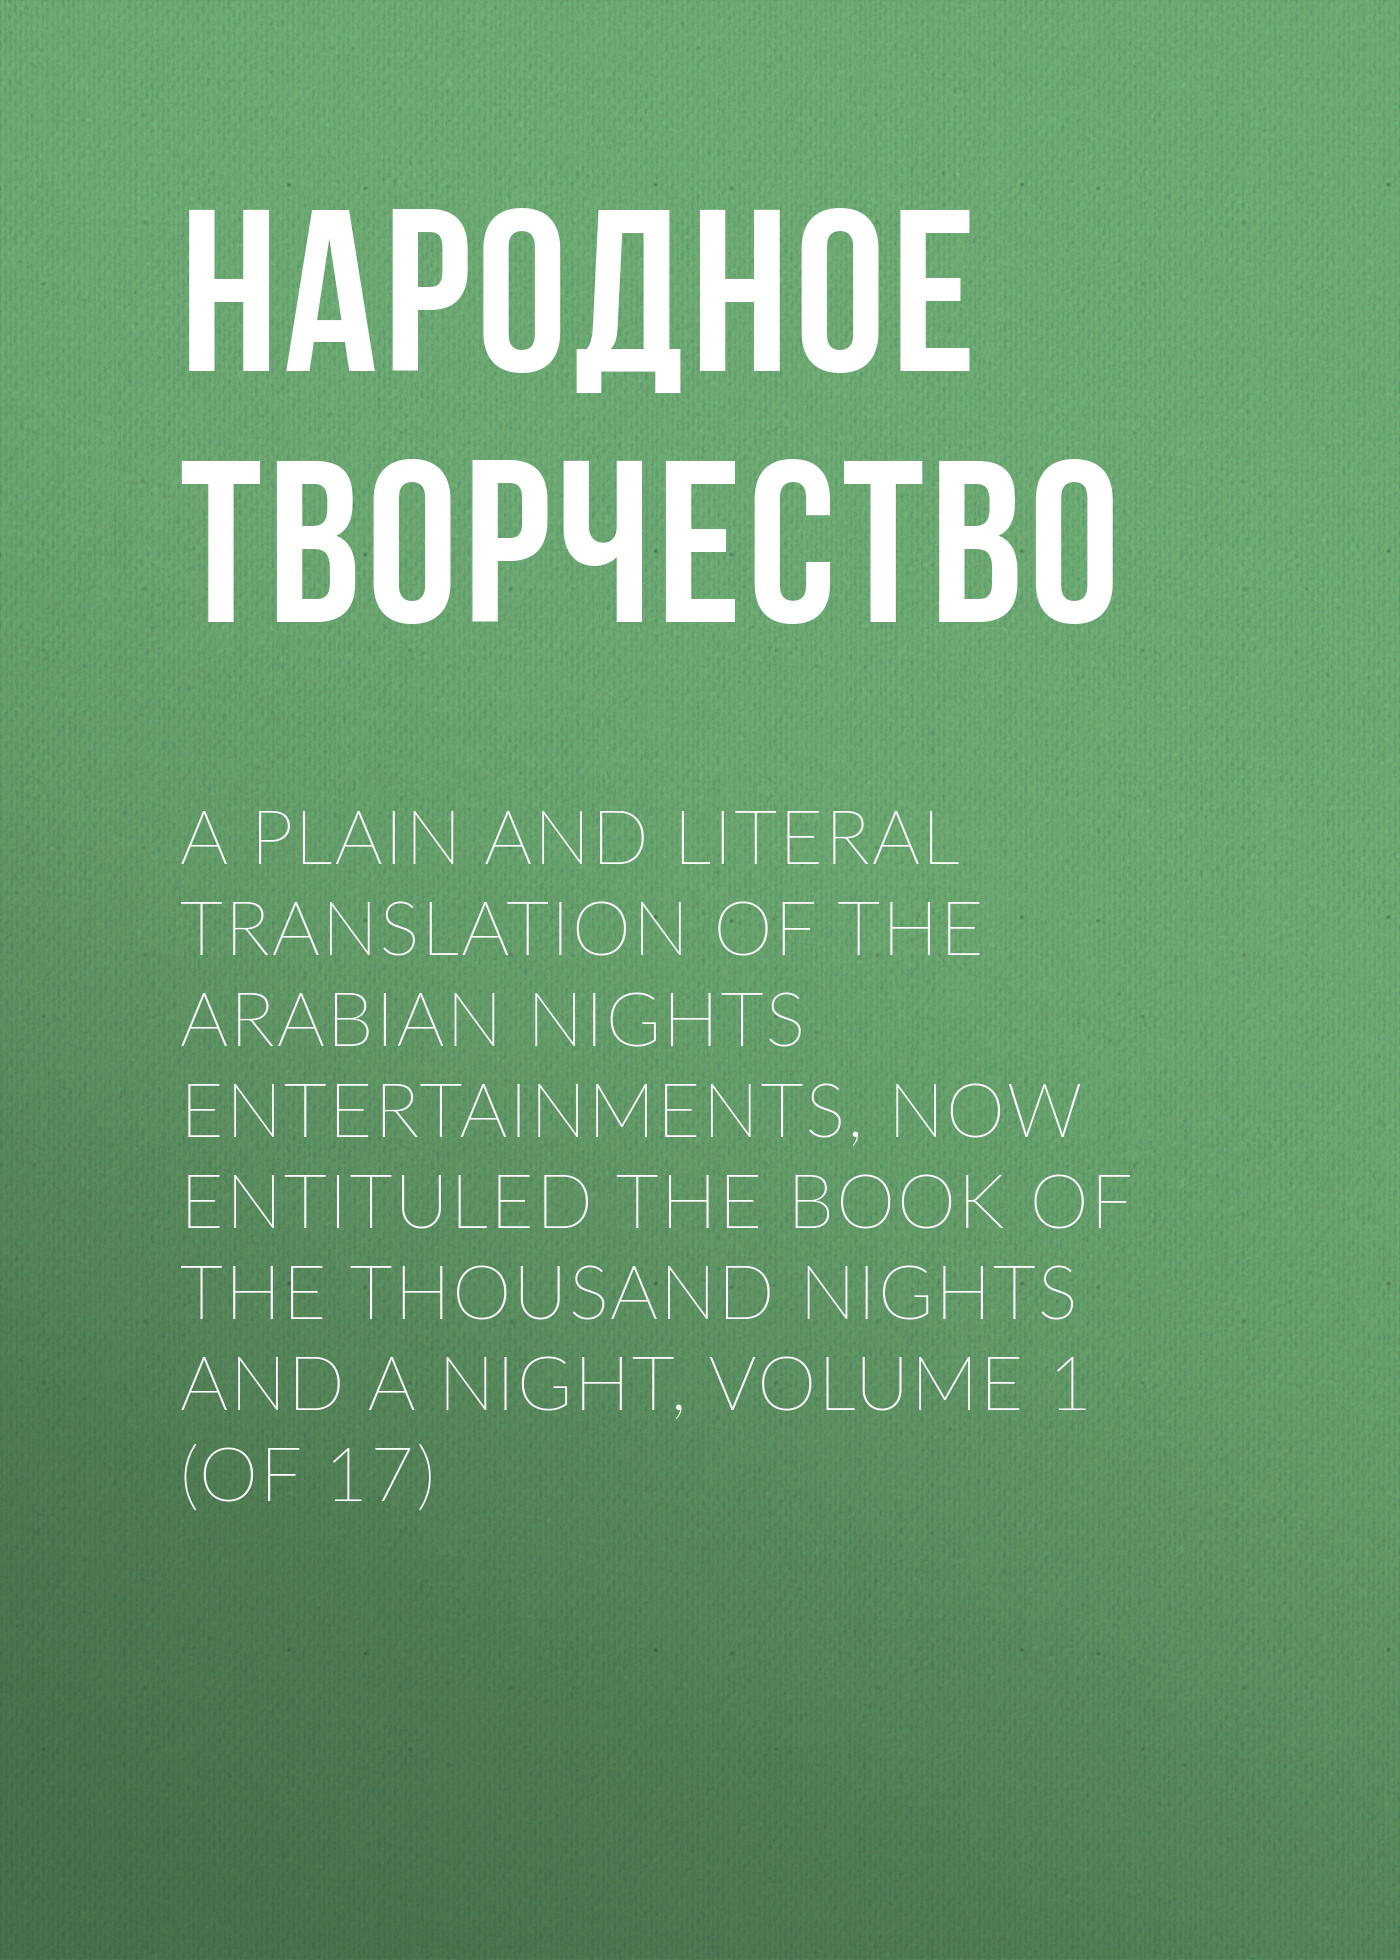 Народное творчество A plain and literal translation of the Arabian nights entertainments, now entituled The Book of the Thousand Nights and a Night, Volume 1 (of 17) народное творчество a plain and literal translation of the arabian nights entertainments now entituled the book of the thousand nights and a night volume 6 of 17